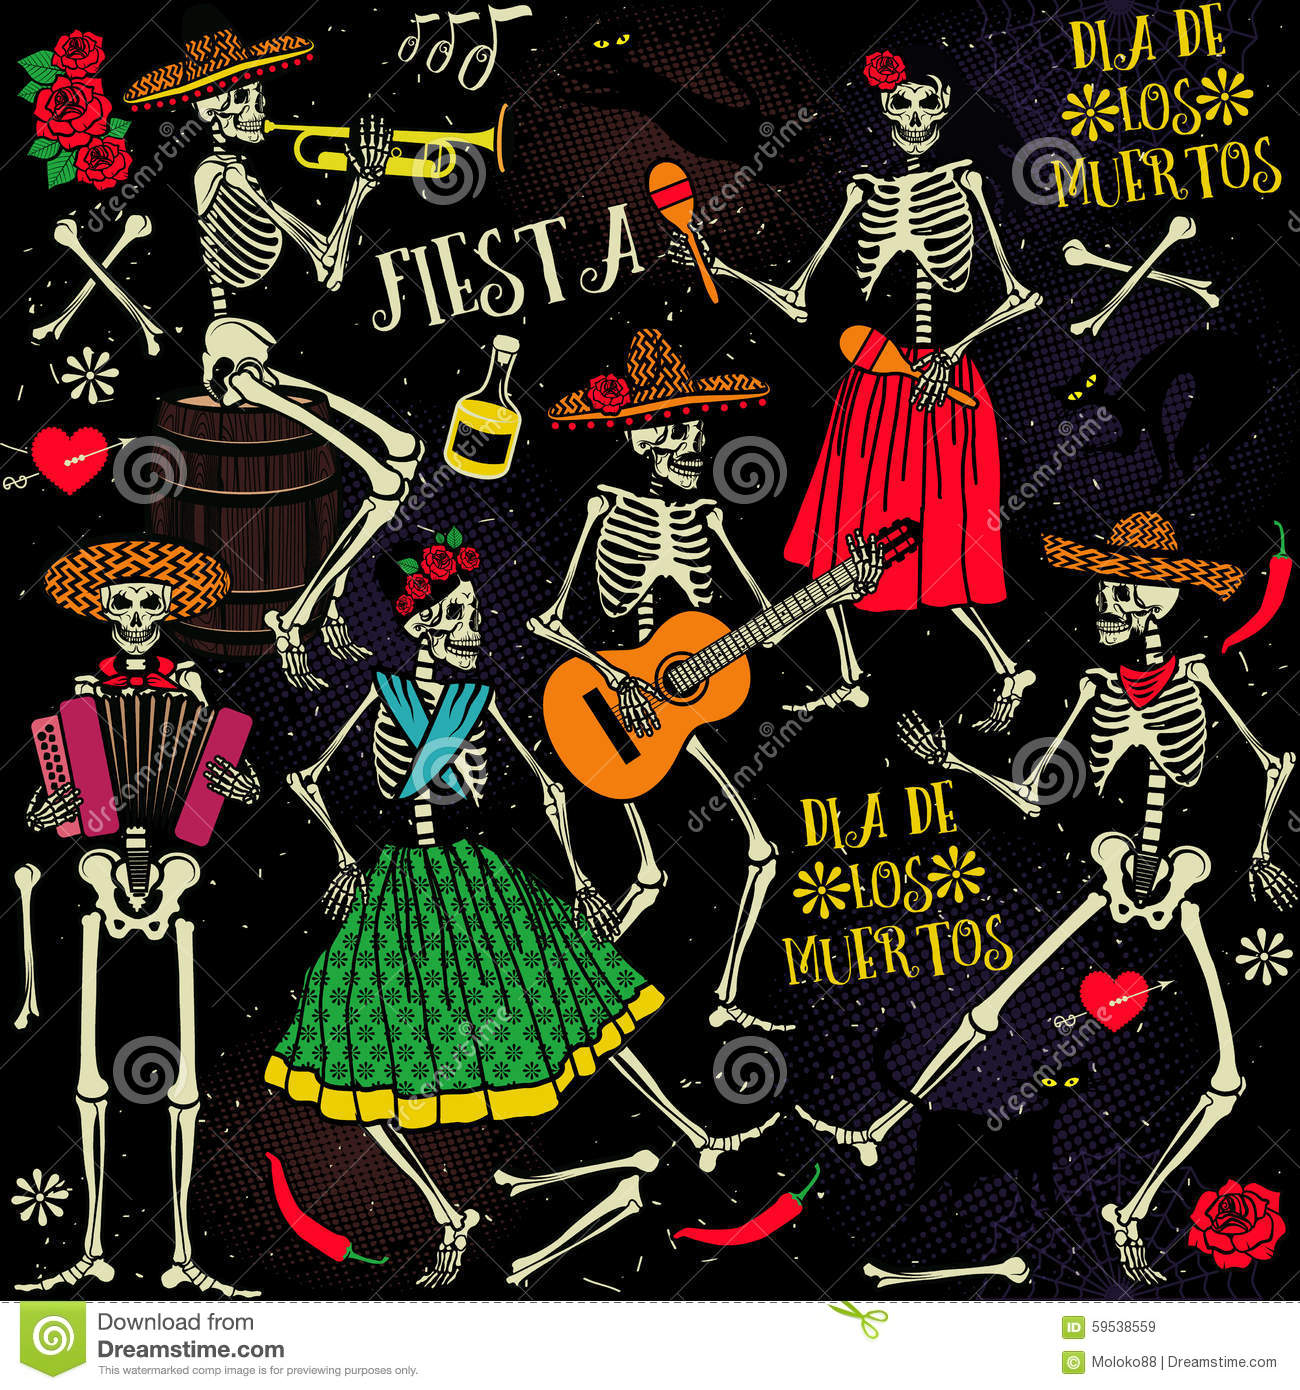 Wallpaper Hd Skeleton Dia De Los Muertos Stock Vector Image 59538559